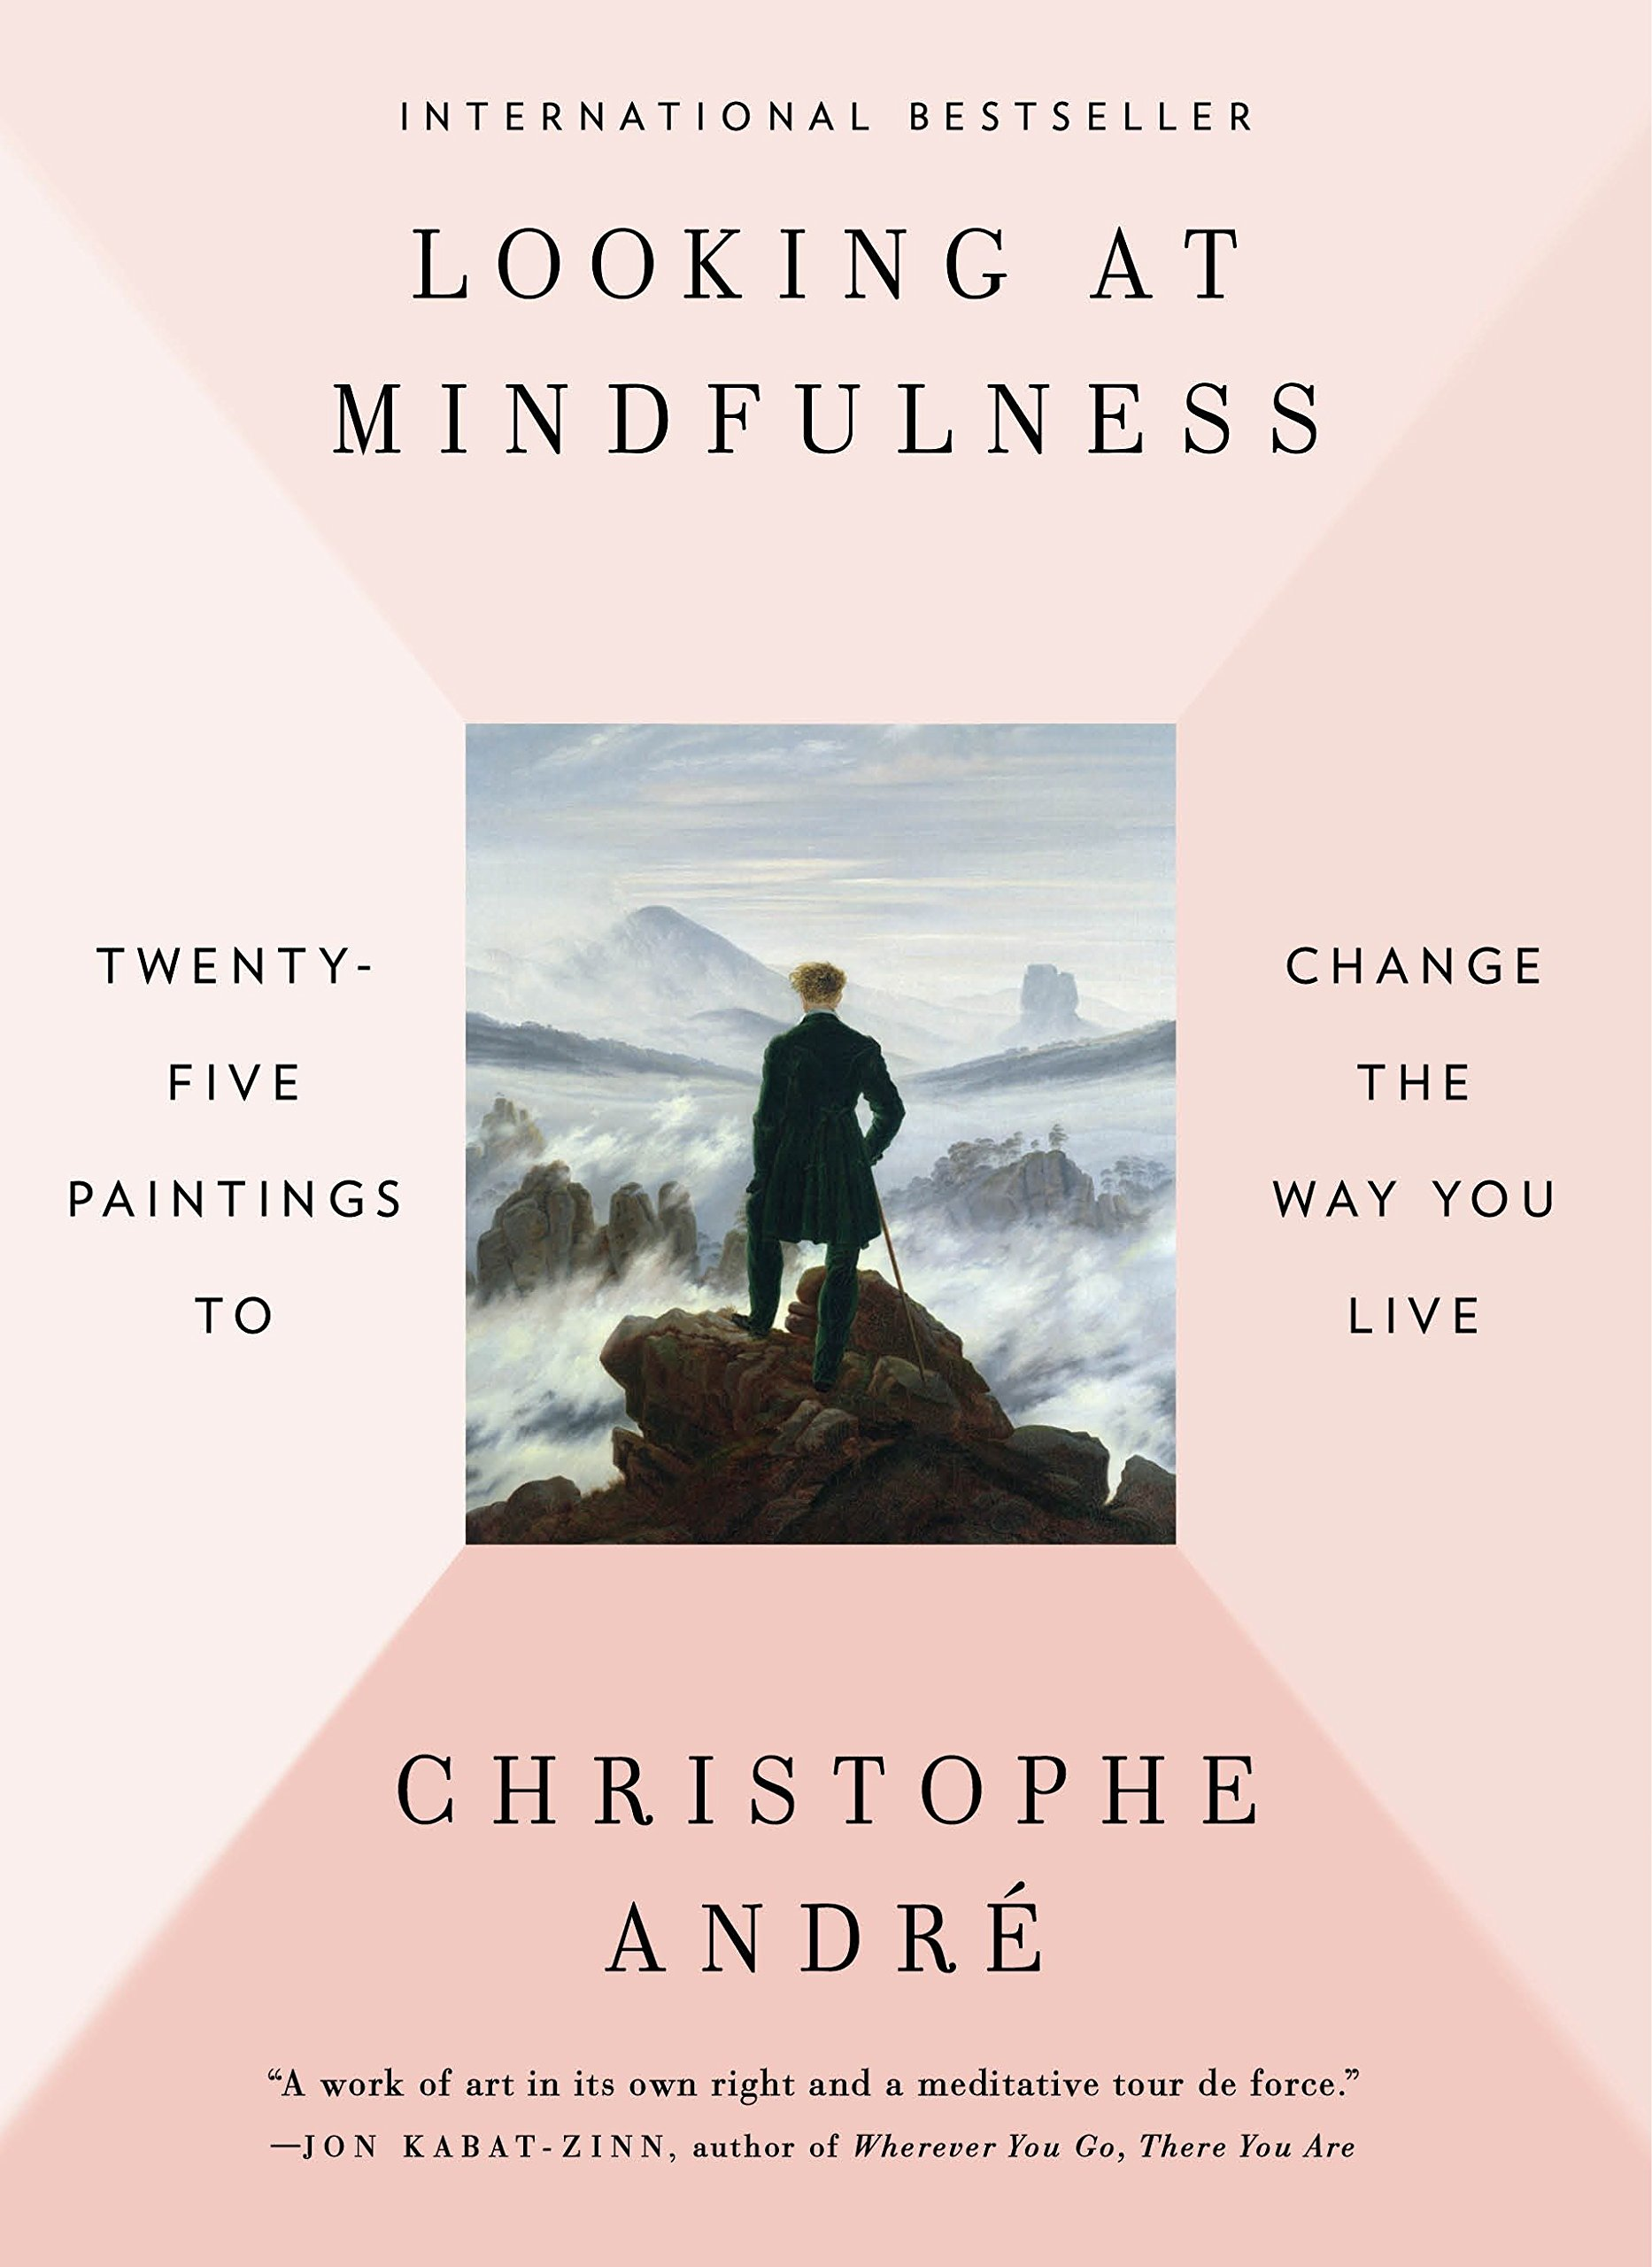 Looking at Mindfulness, Christophe Andre